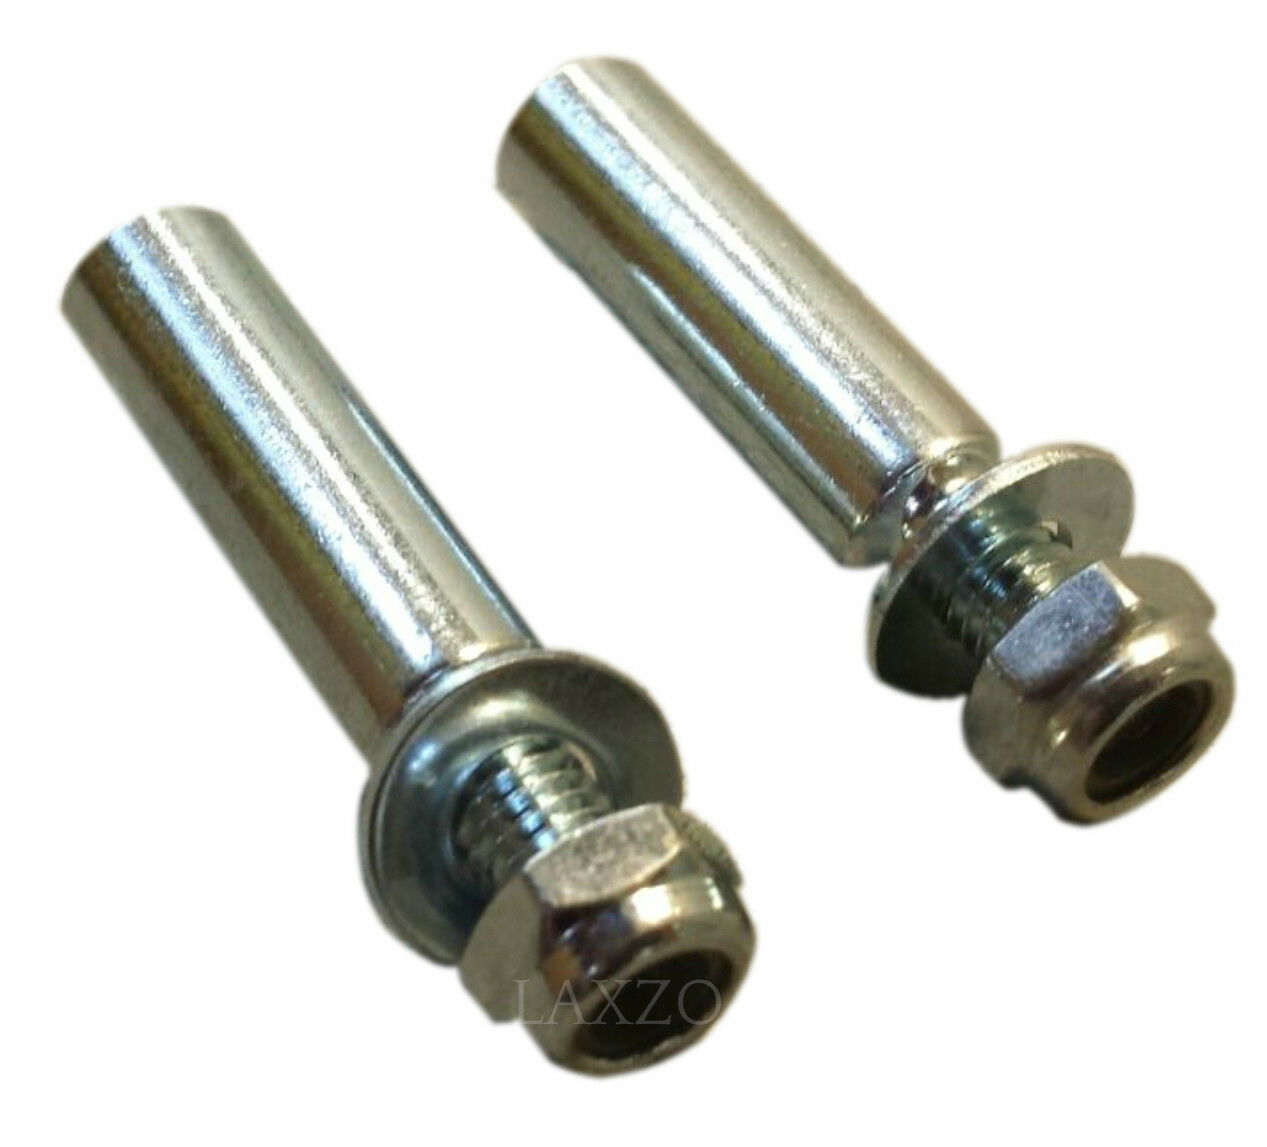 2 9.5mm Cotter Crank Pin Set Replacement Pins